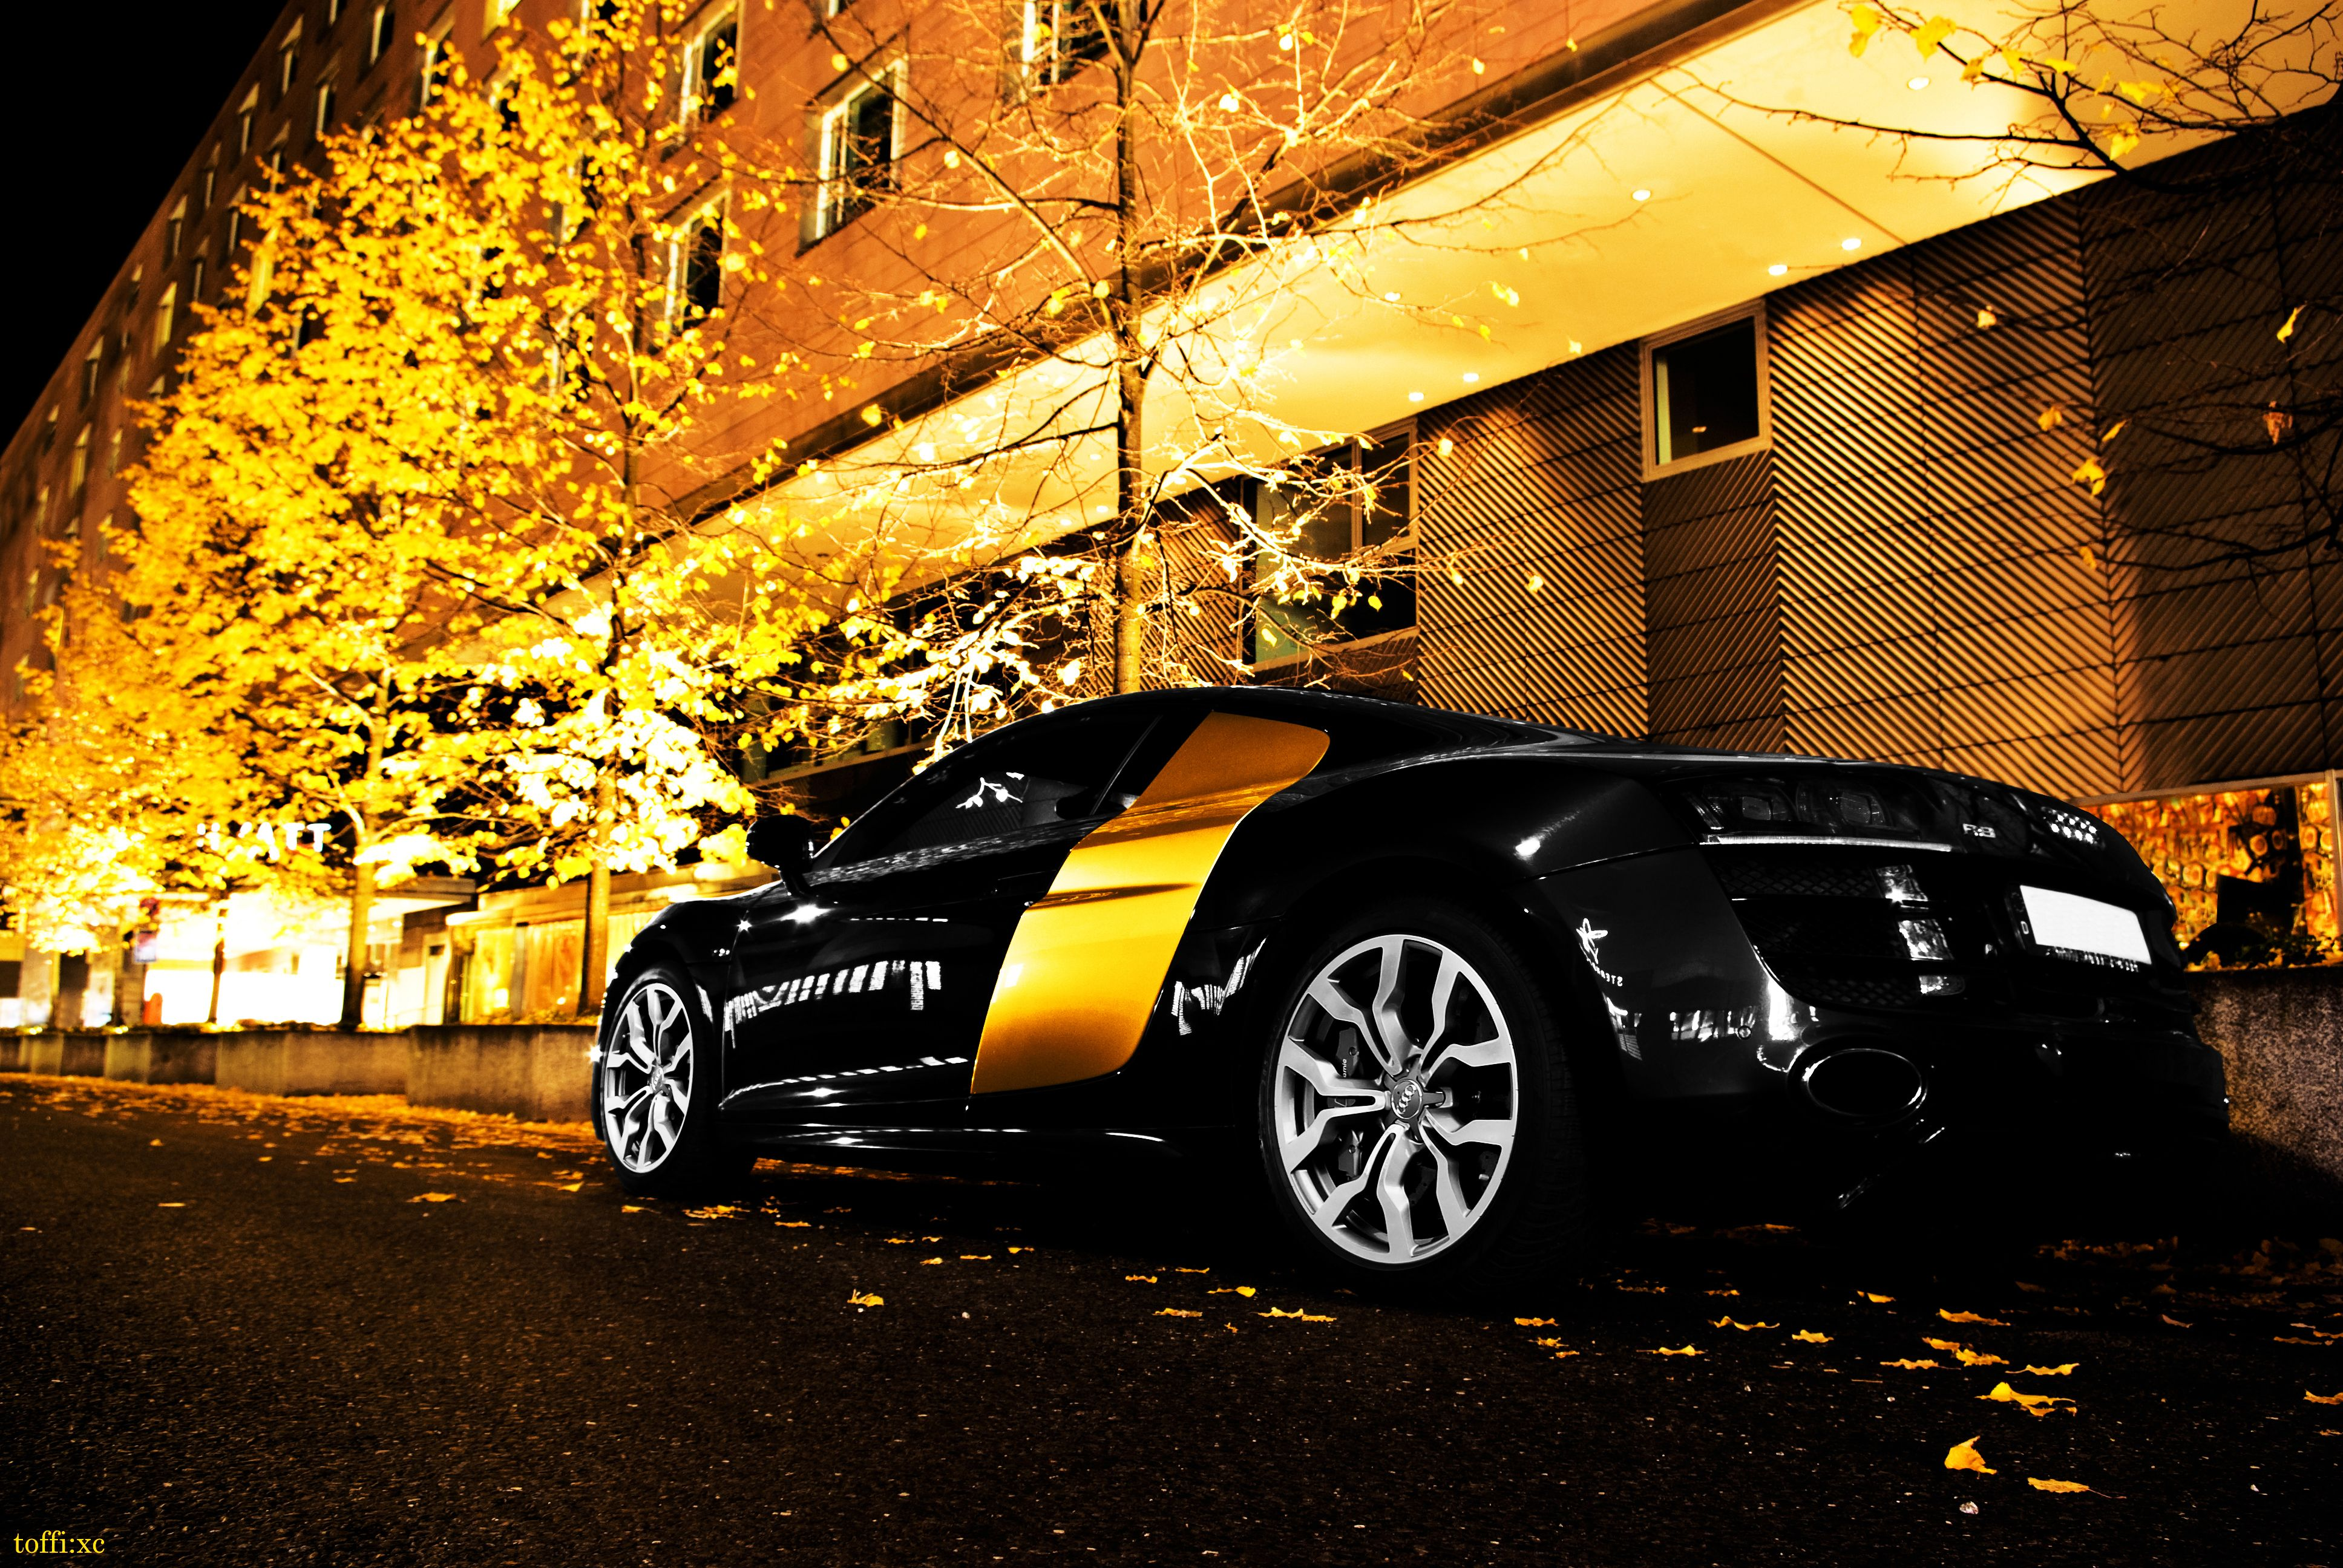 Black And Gold Car Wallpapers Hd Wallpapers Of Cars Cool Car Wallpapers Hd